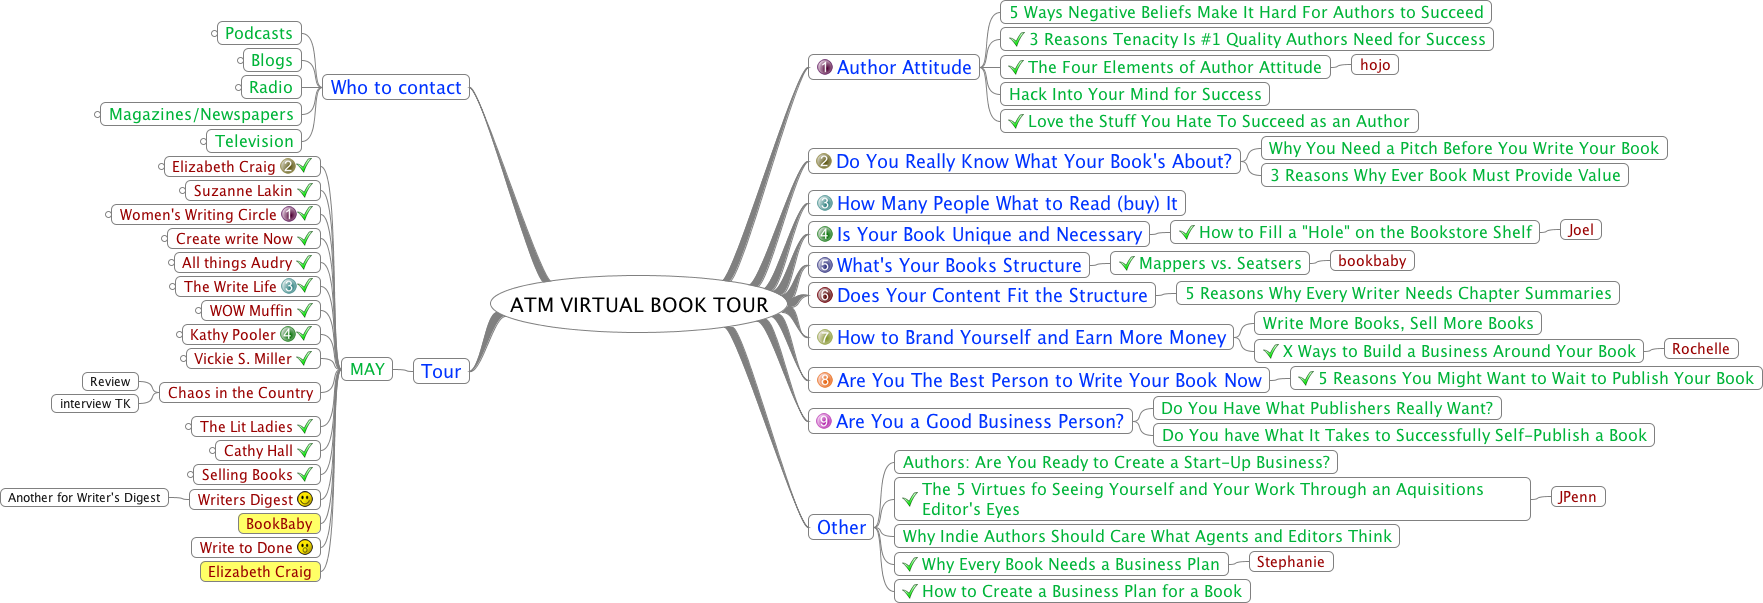 How to Prepare for Your Virtual Book Tour